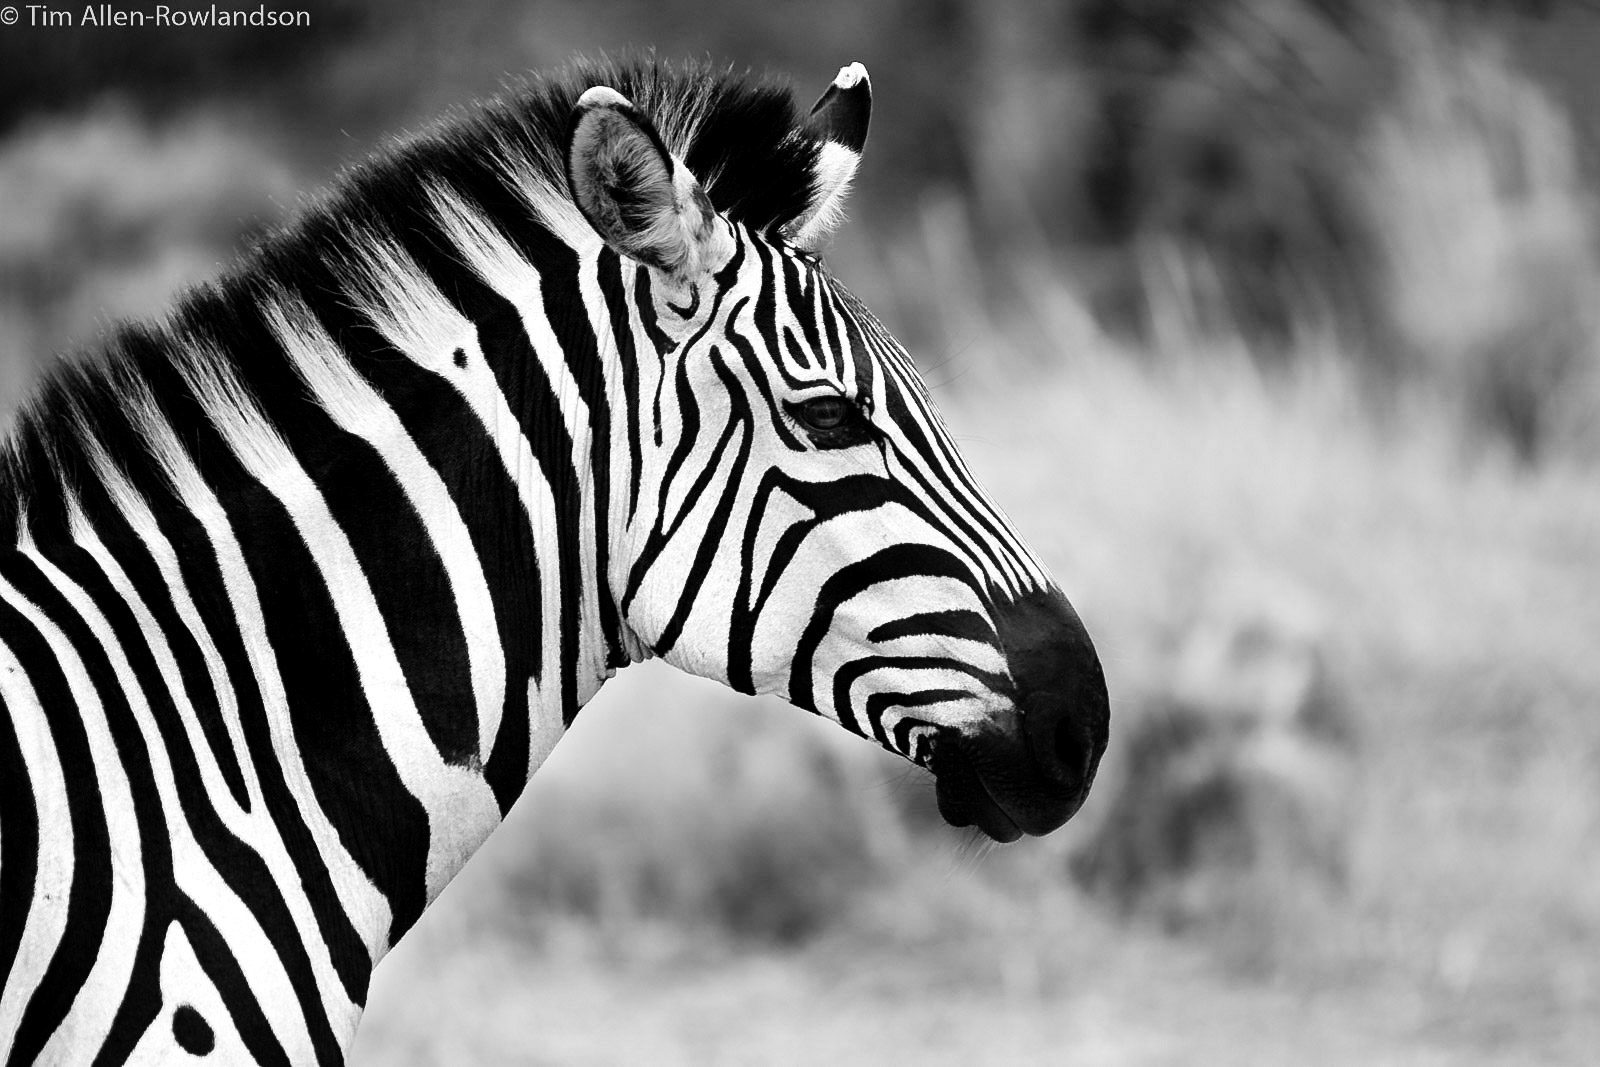 Black and white zebra portrait, Masai Mara